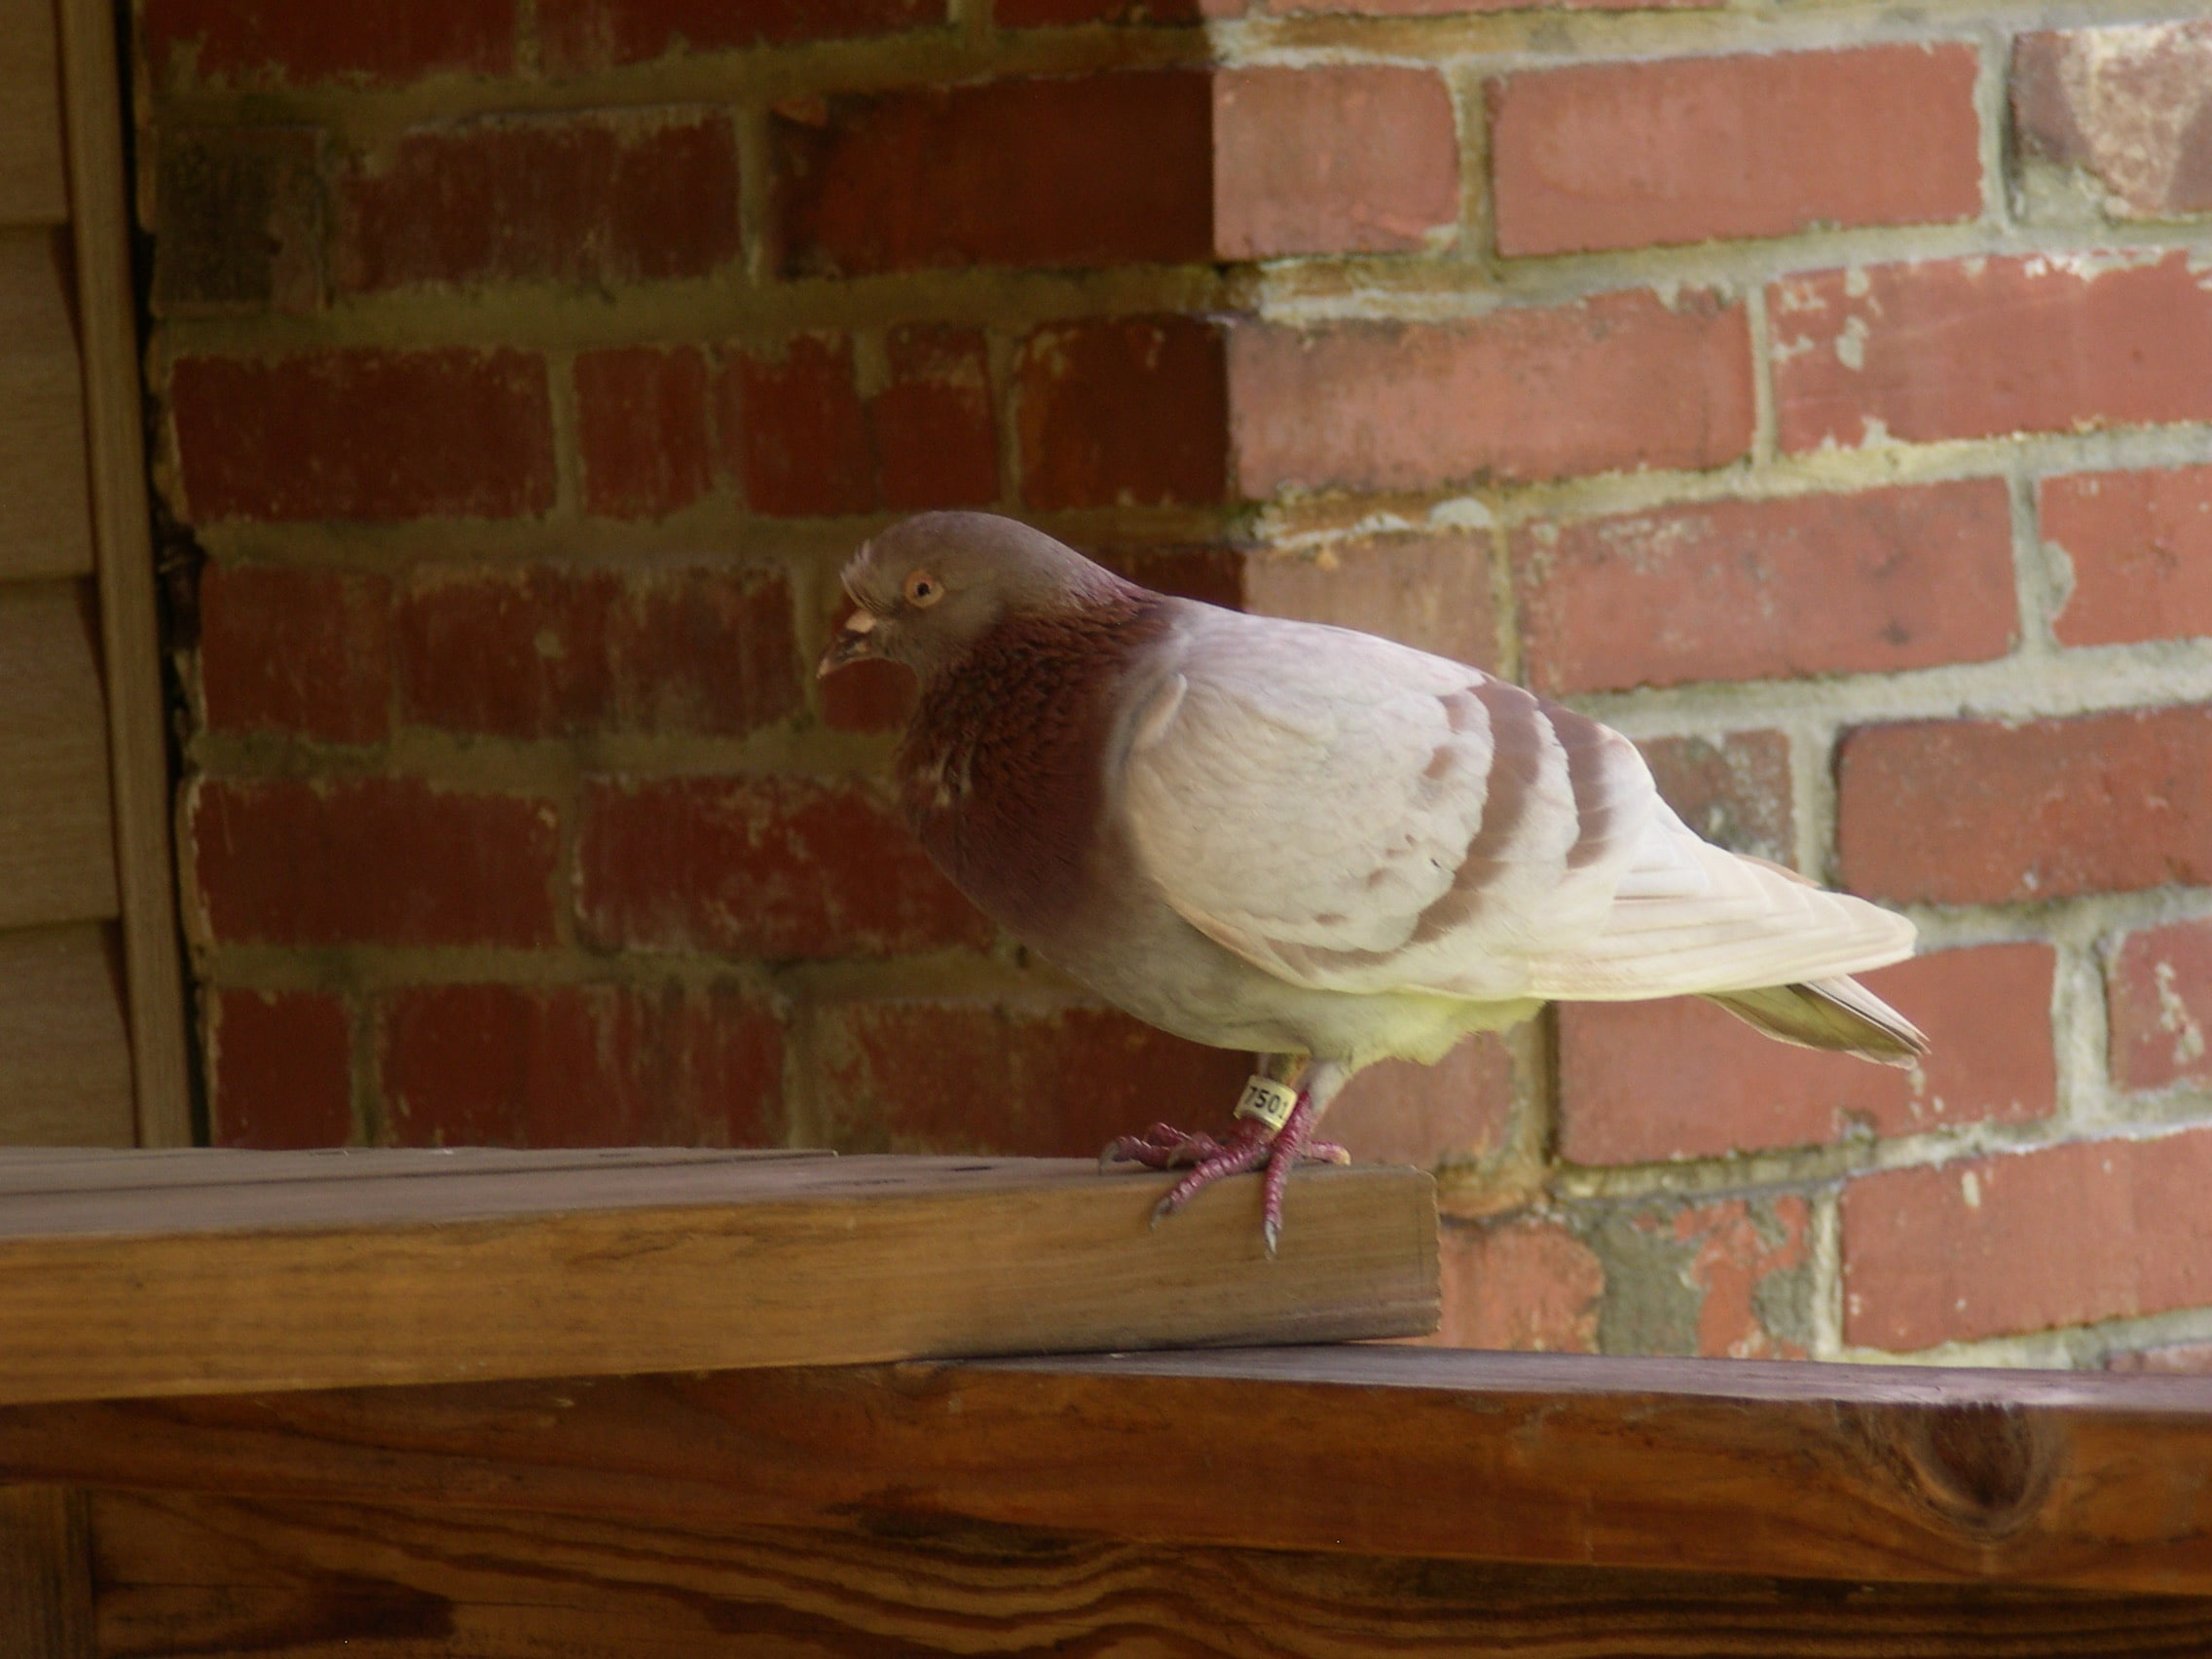 Pigeon with ID band